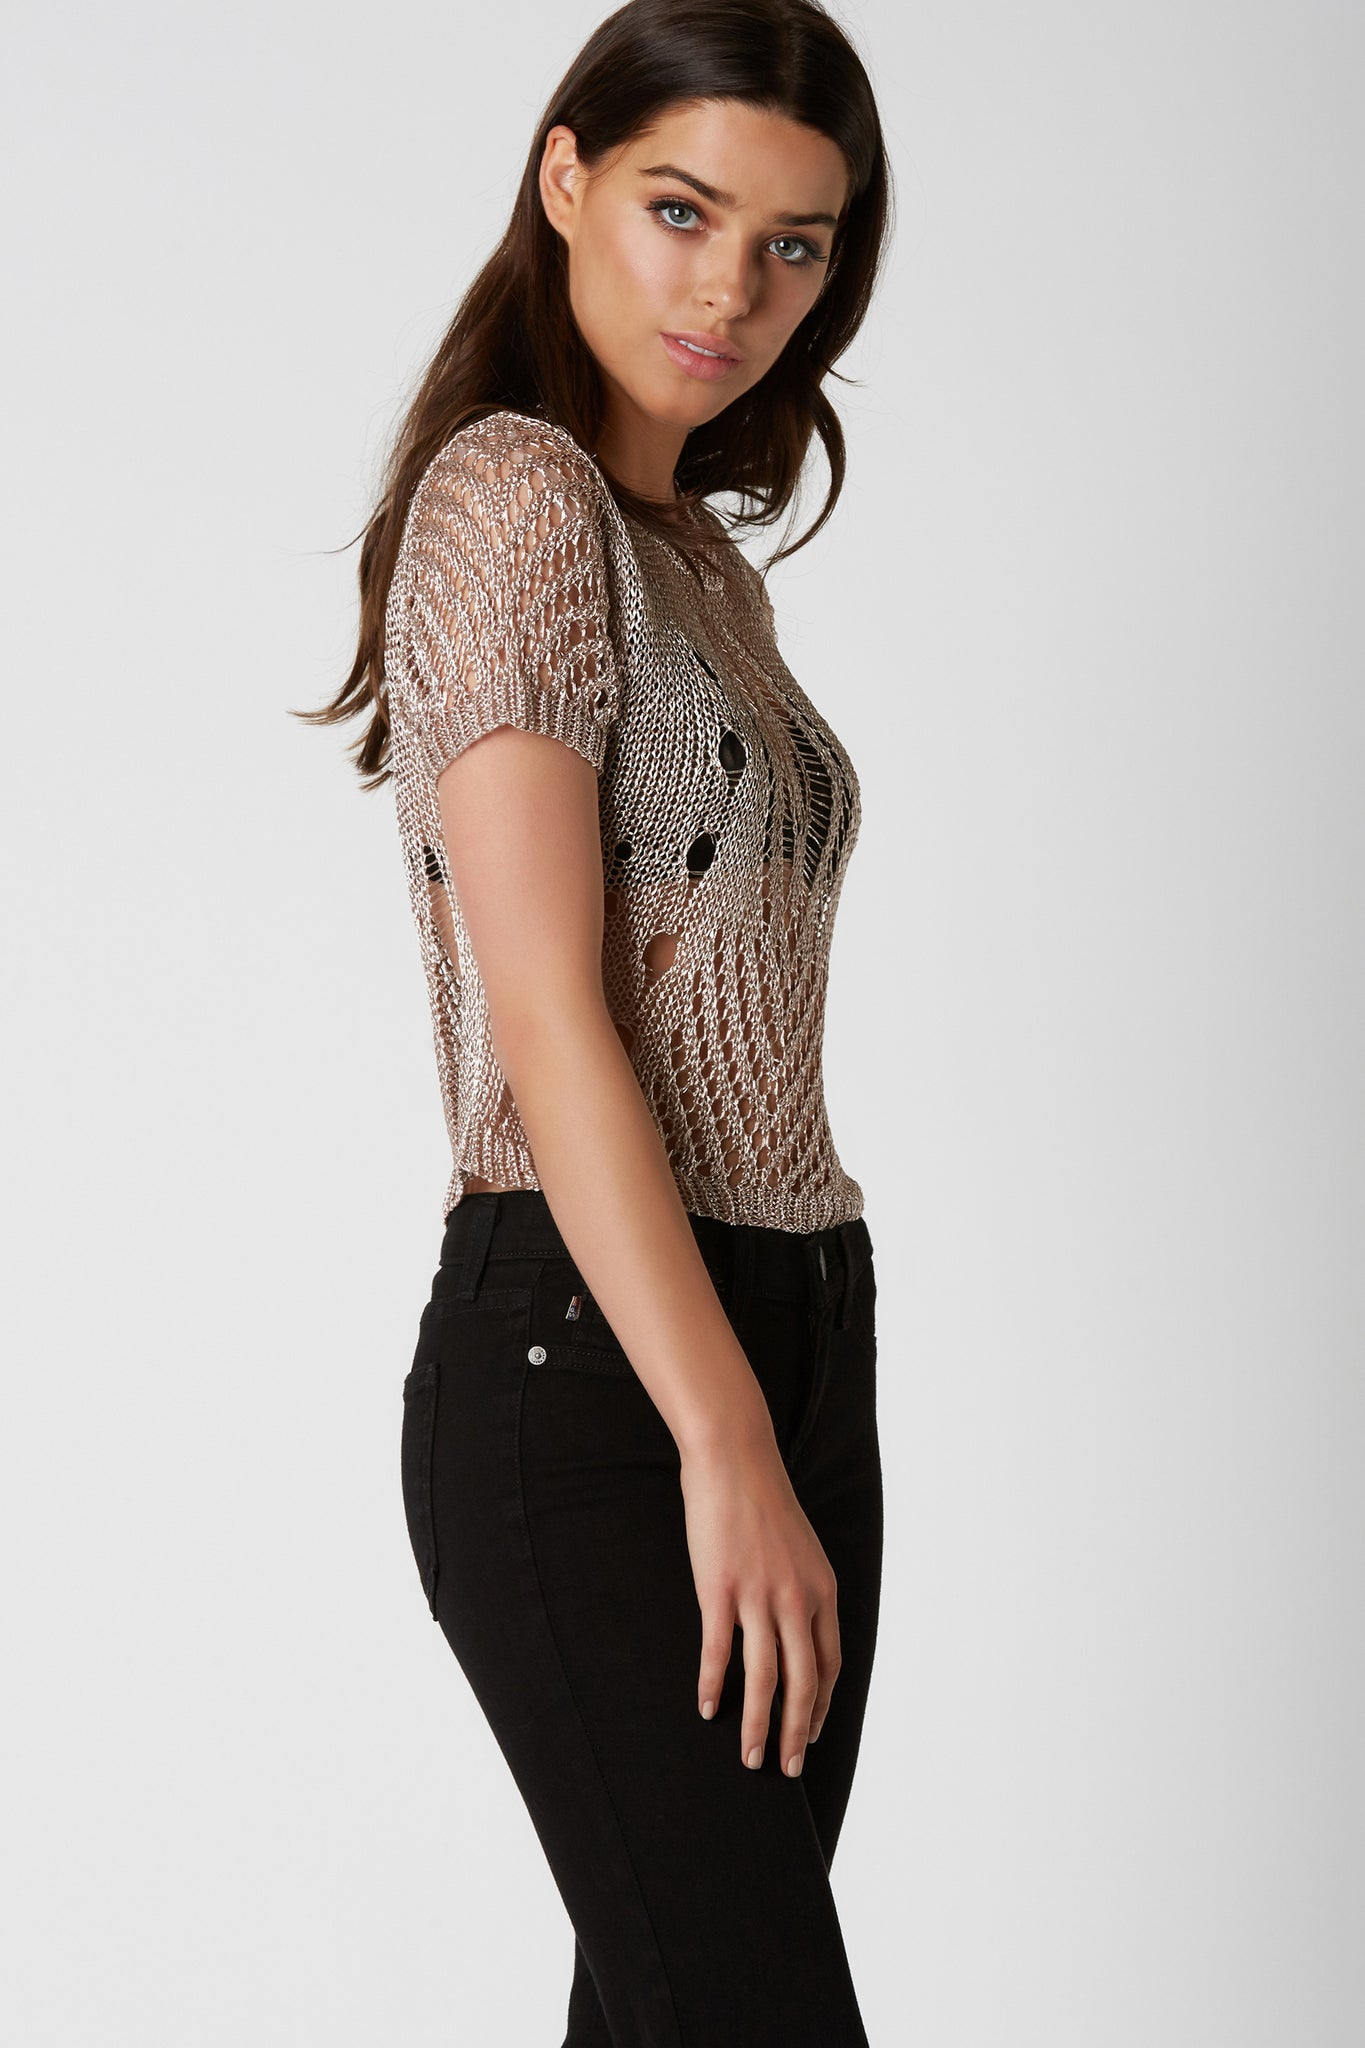 Crew neck loose knit top with short sleeves and straight hem finish. Distressed design and bold metallic finish.